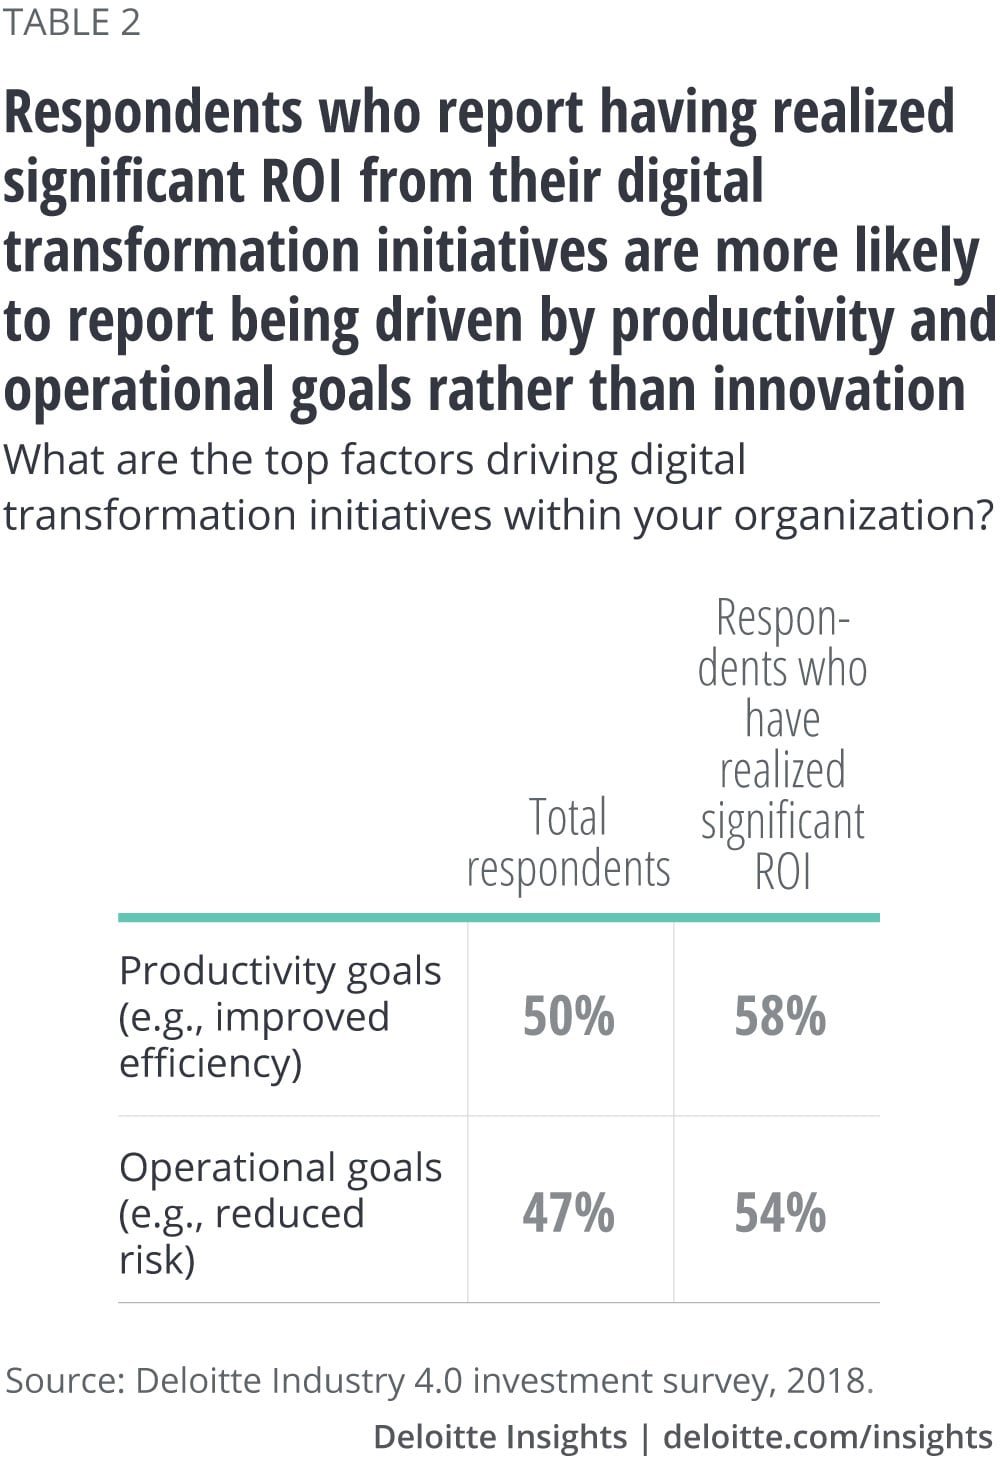 Respondents whose organizations have realized significant ROI from their digital transformation initiatives are more likely to report being driven by productivity and operational goals rather than innovation